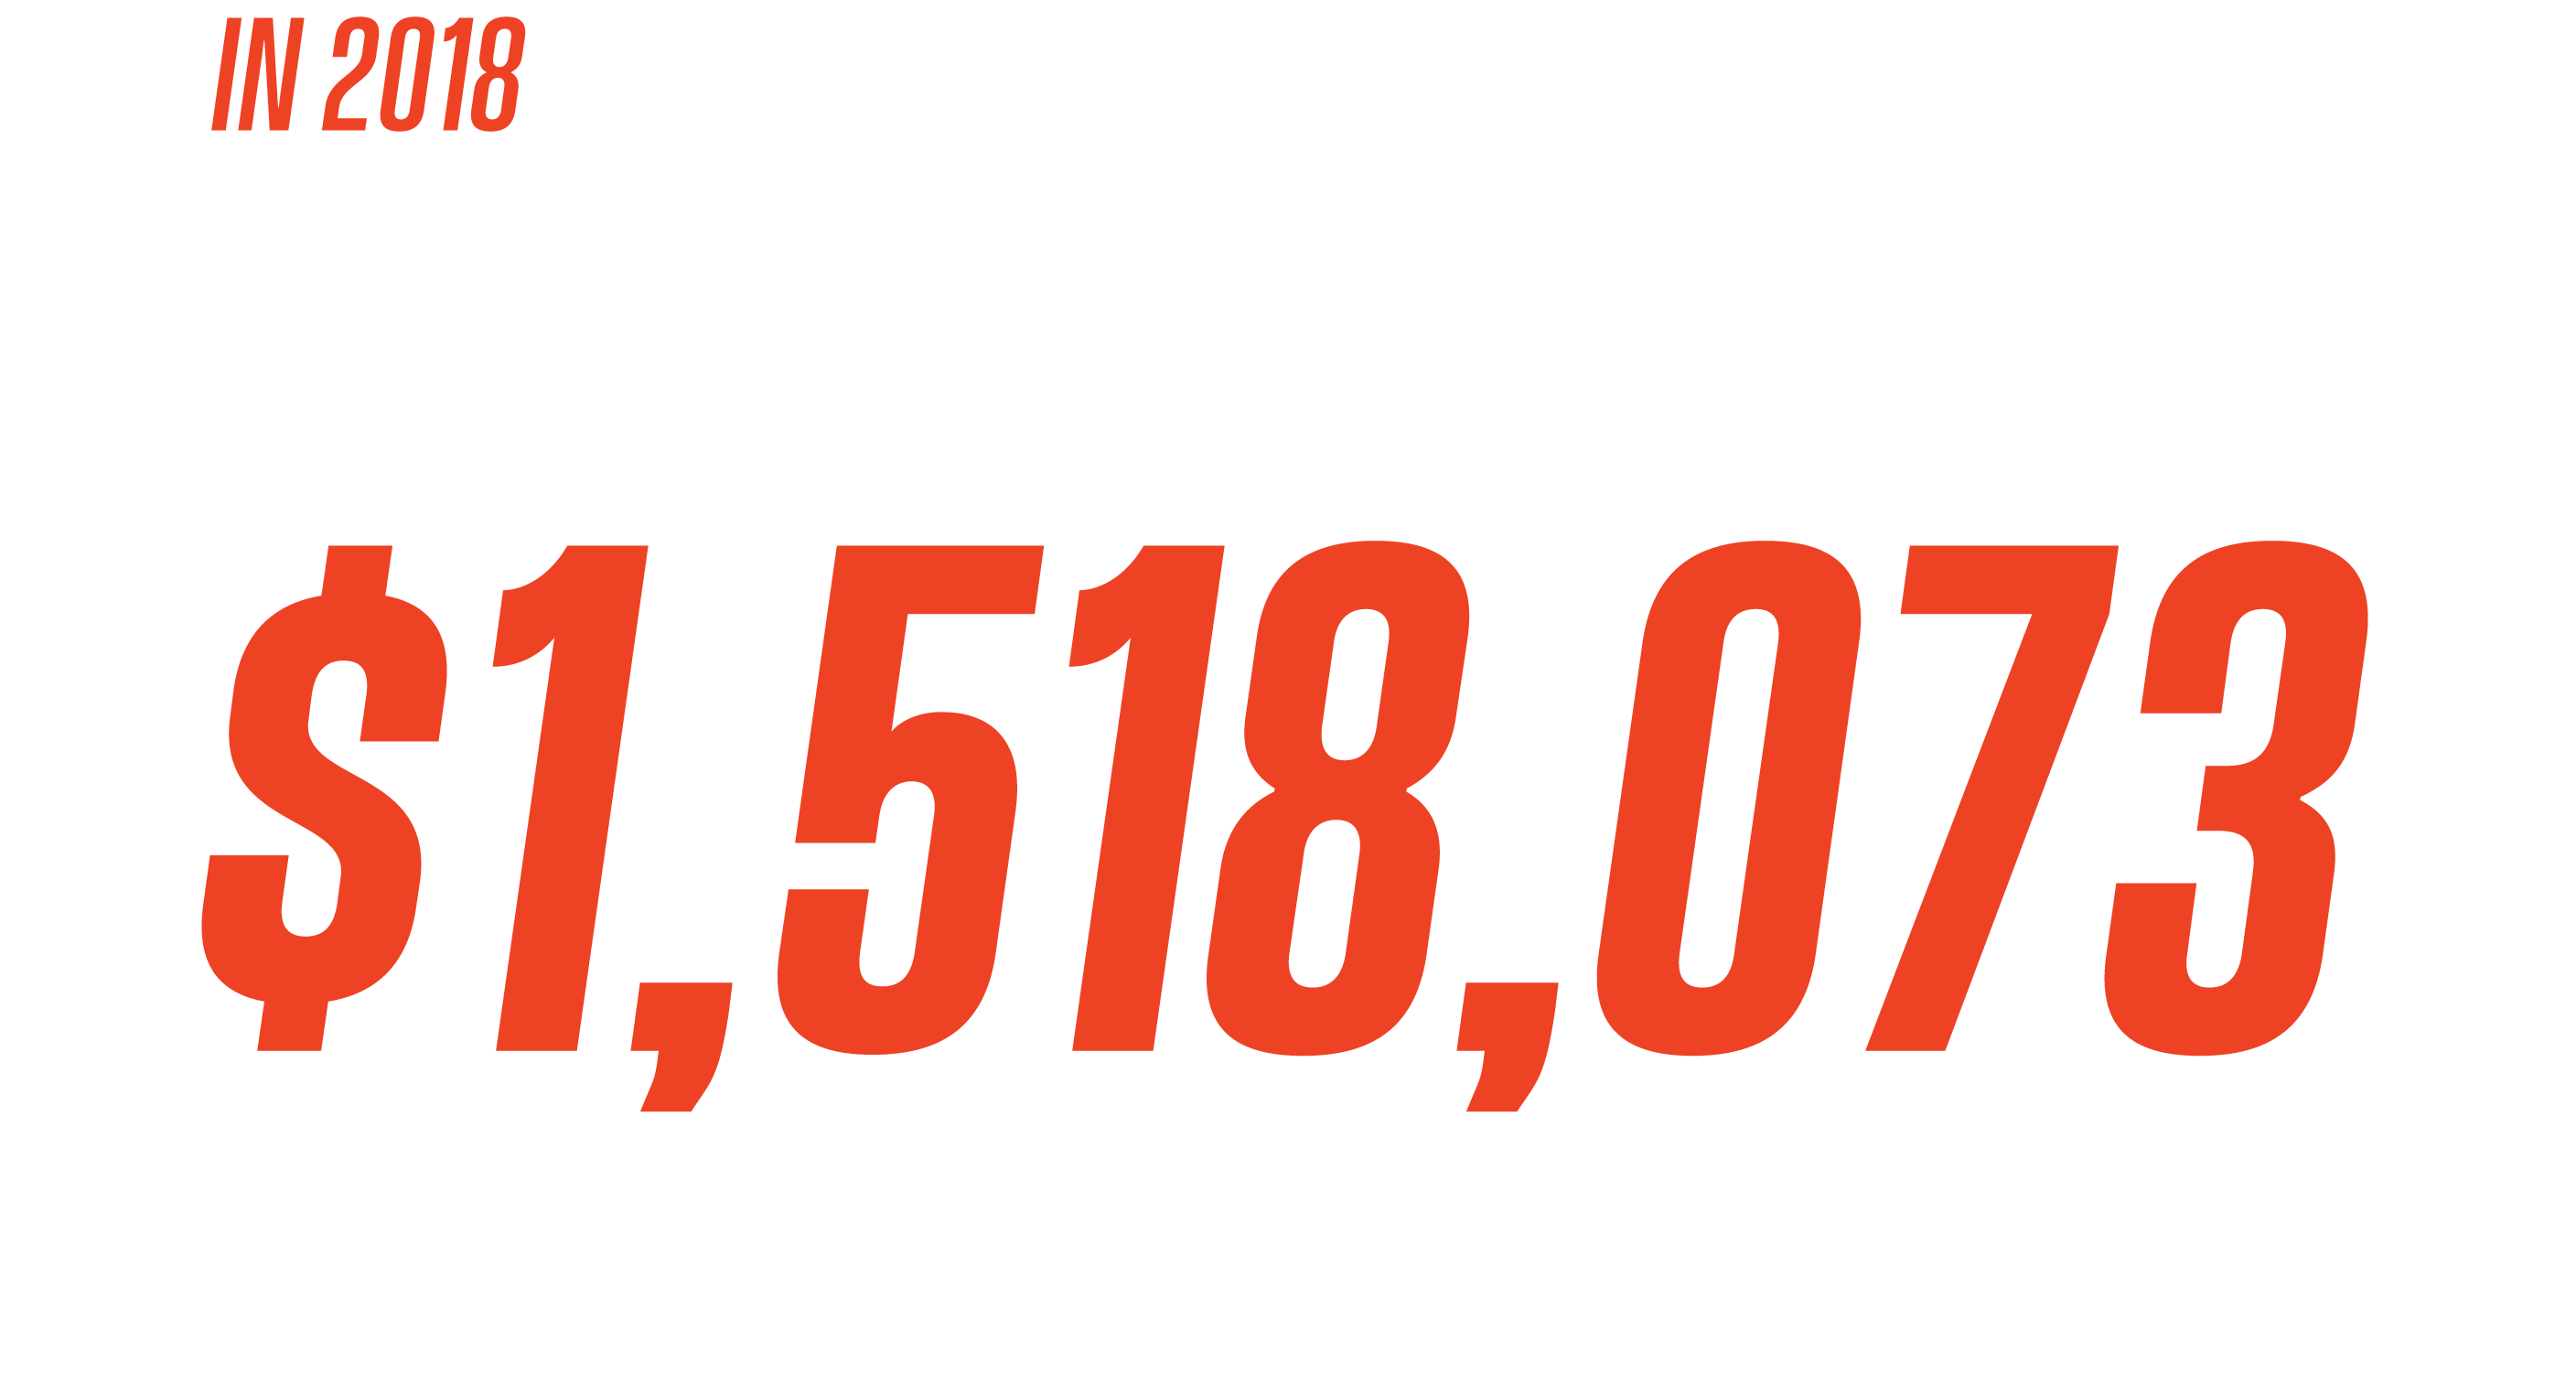 In 2018, Red Rocks Church invested $1,518,073 in Local and International Ministry